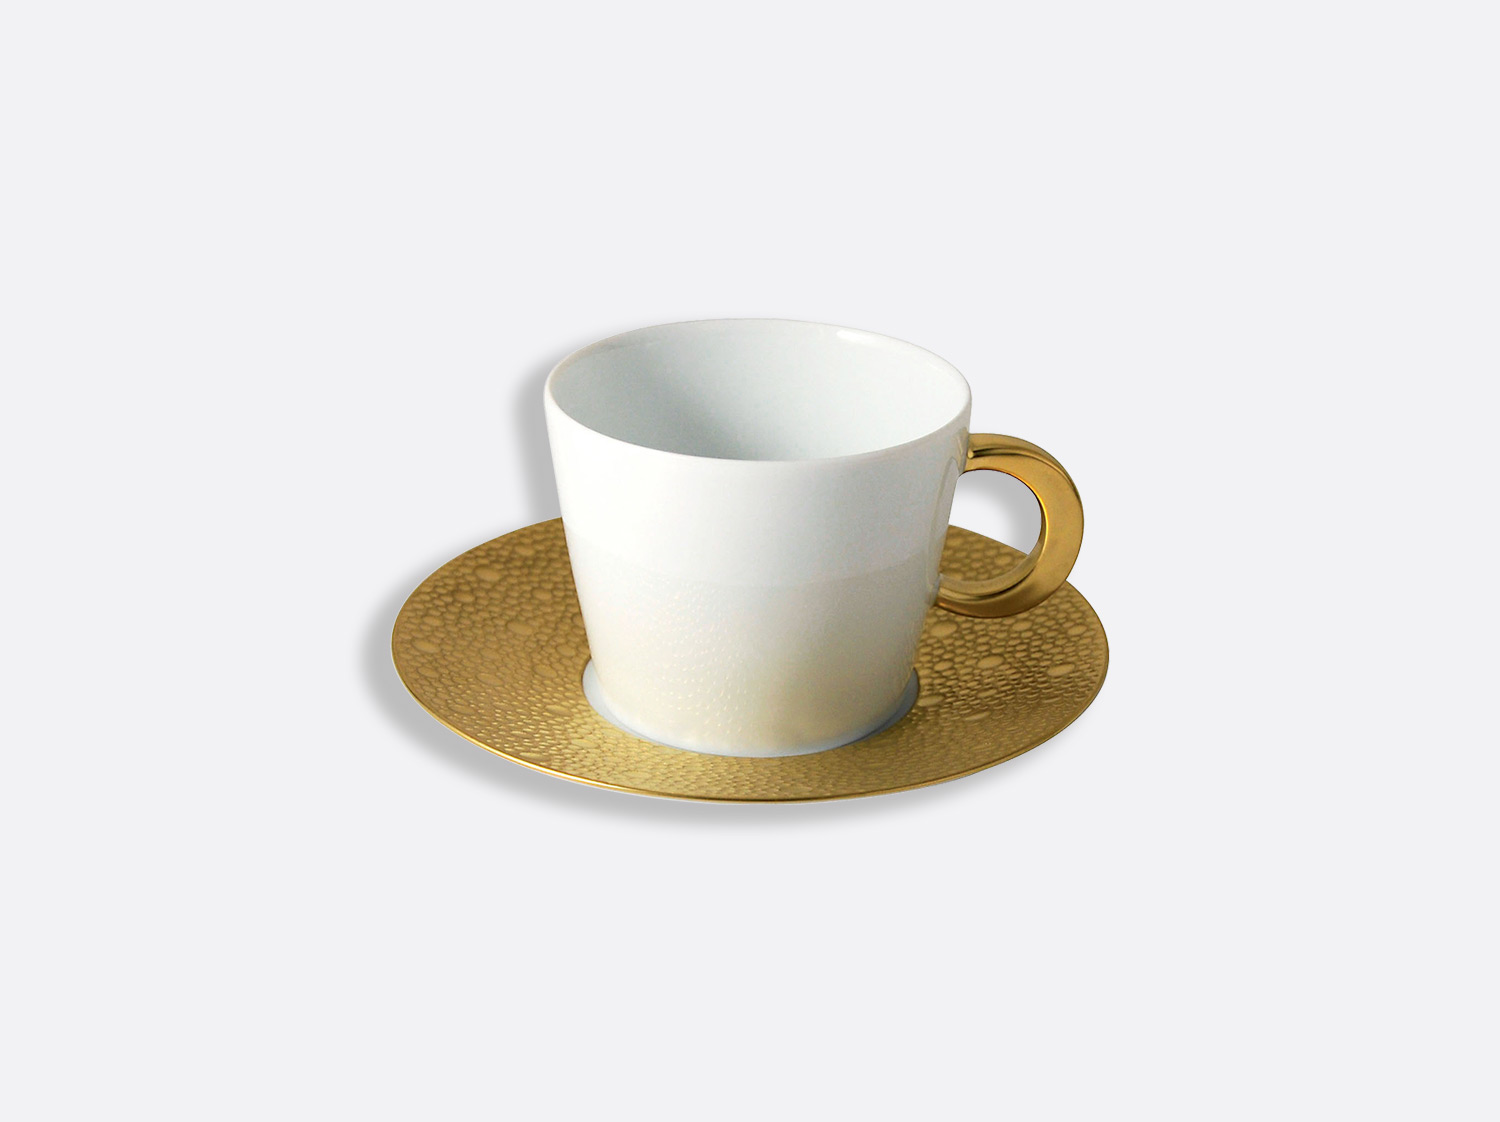 China カップ&ソーサ― 170ml of the collection Ecume or | Bernardaud